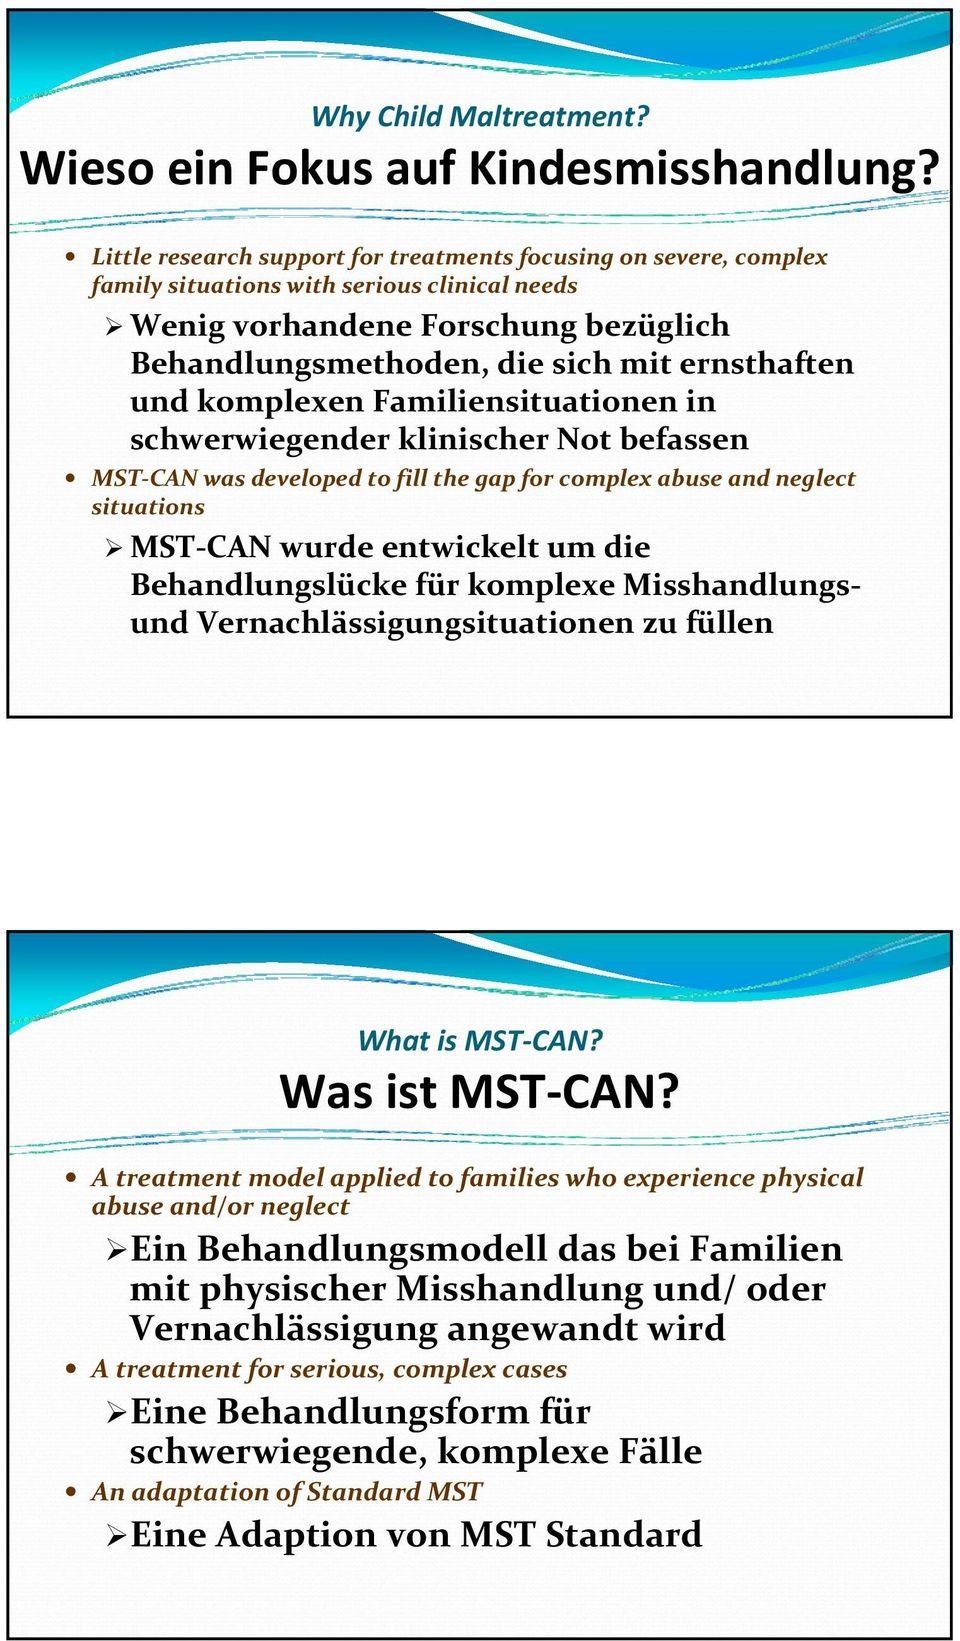 komplexen Familiensituationen in schwerwiegender klinischer Not befassen MST CAN was developed to fill the gap for complex abuse and neglect situations MST CAN wurde entwickelt um die